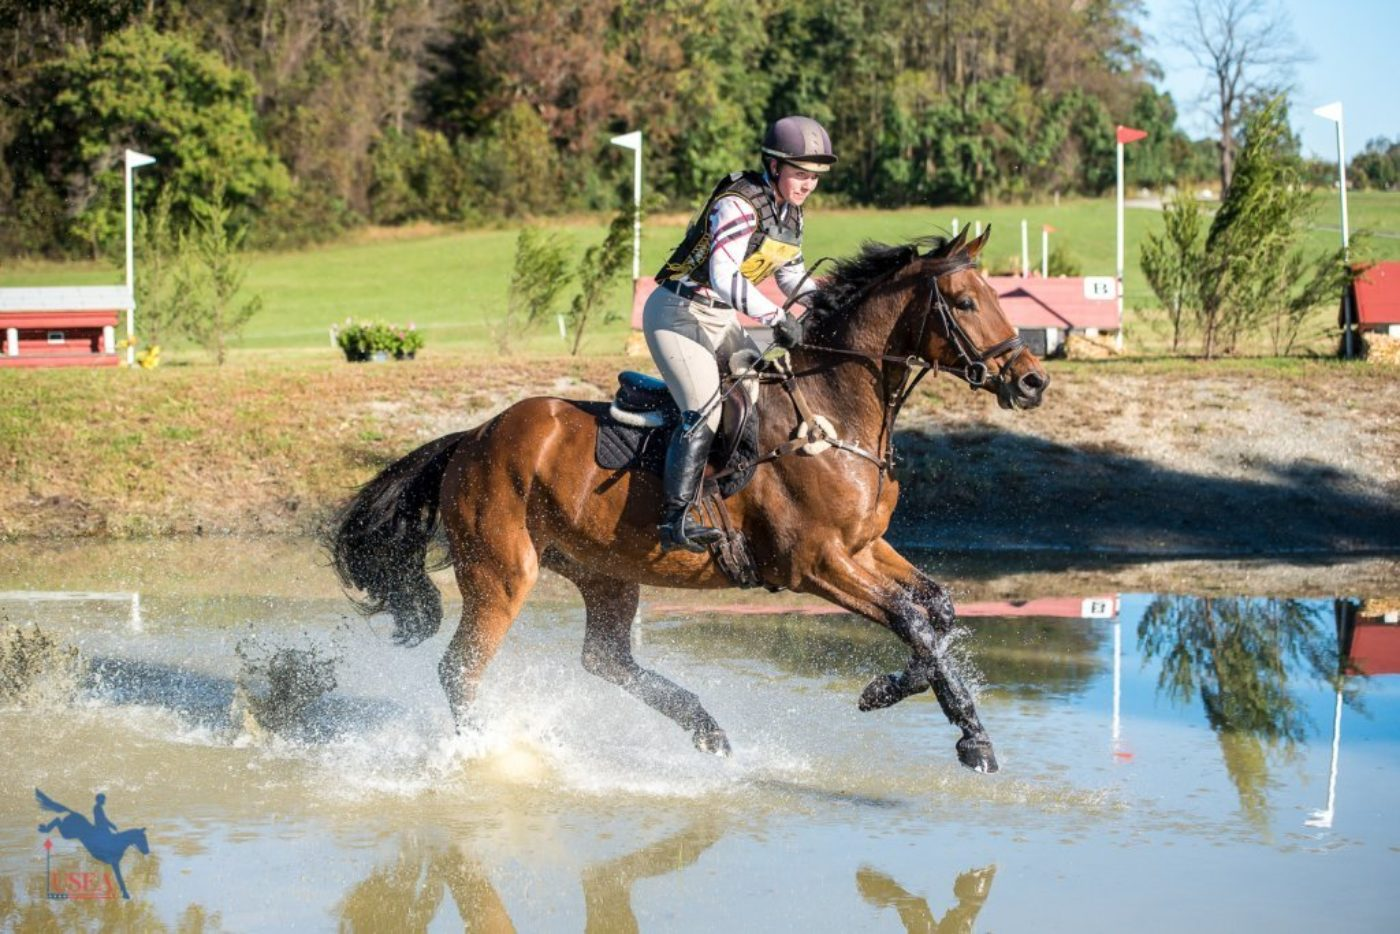 Booli Selmayr and Quality Touchdown splashing their way through the YEH Championship jumping course. USEA/Jessica Duffy Photo.